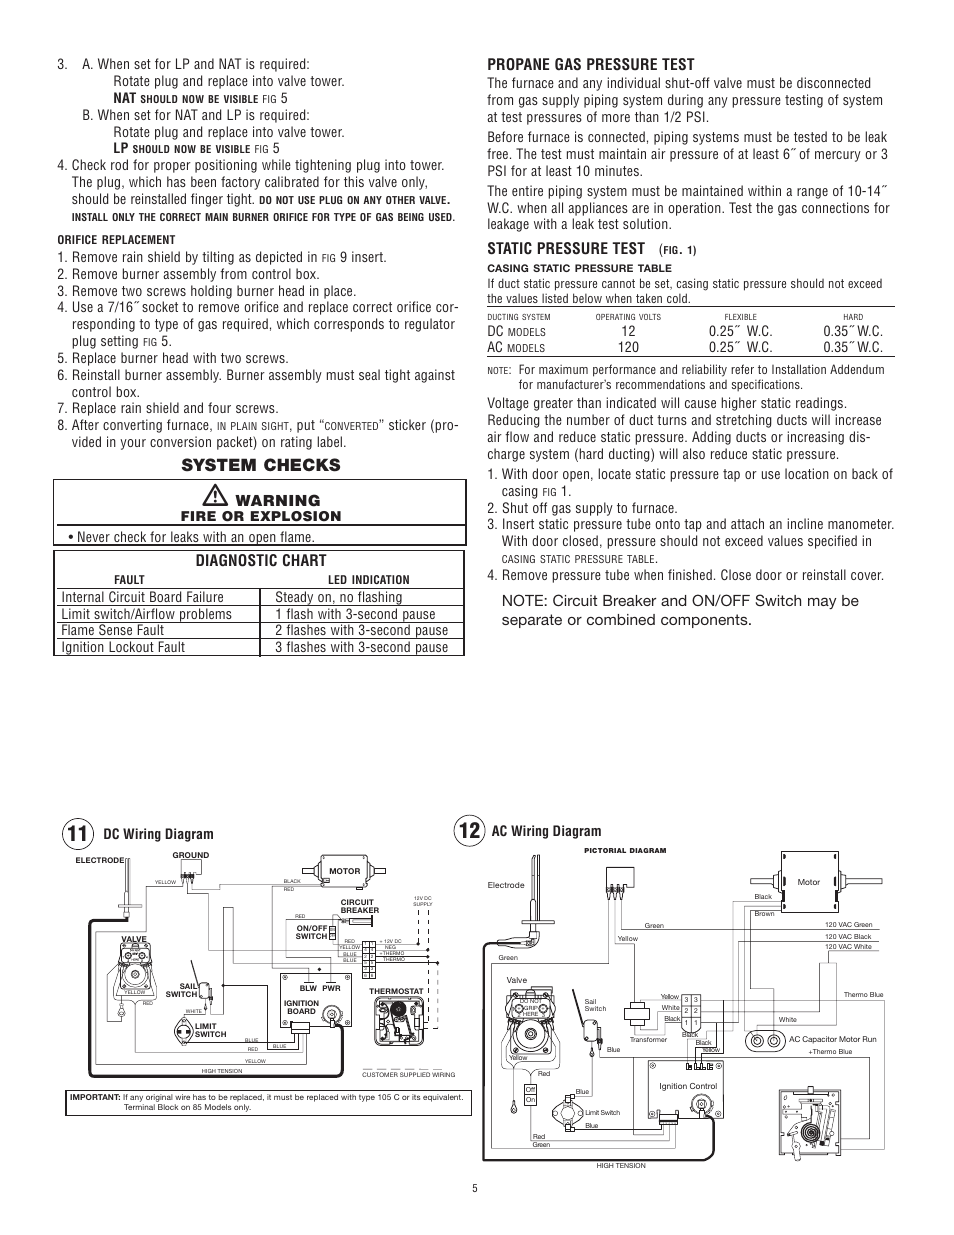 System Checks Warning Diagnostic Chart Atwood Mobile Products Dc To Ac Wiring Diagram Propane Gas Pressure Test Static